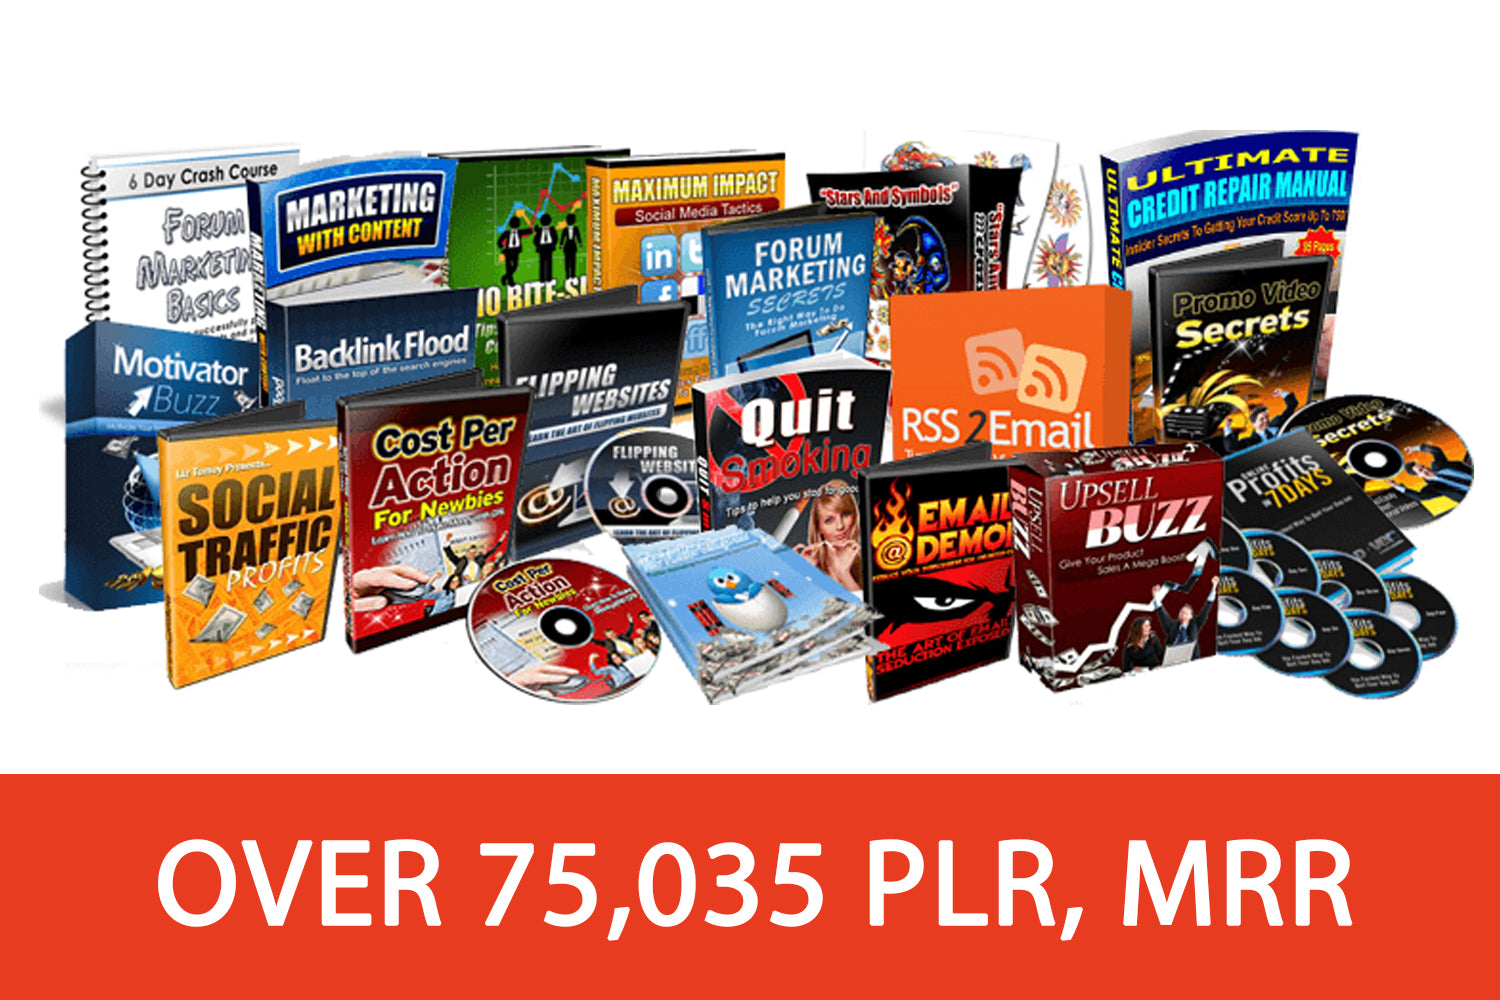 Instant Access to 75,035 PLR Products Which You Can Resell And Keep 100% Of The Profits!